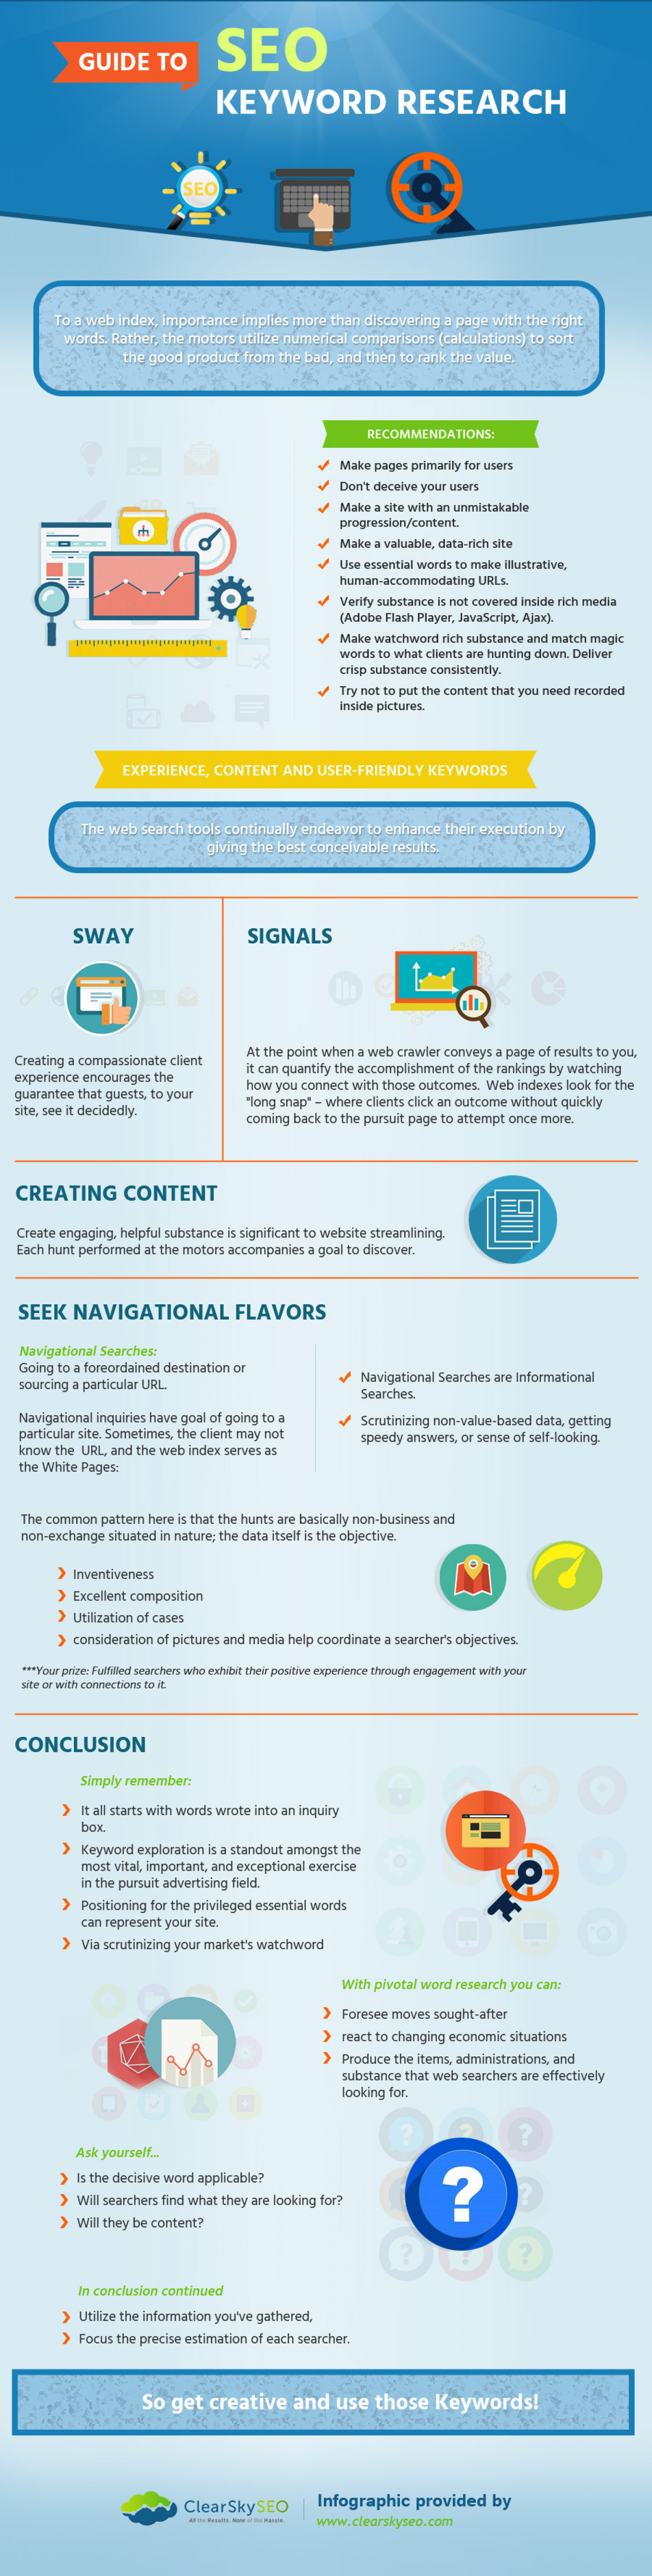 Guide to SEO Keyword Research  Infographic